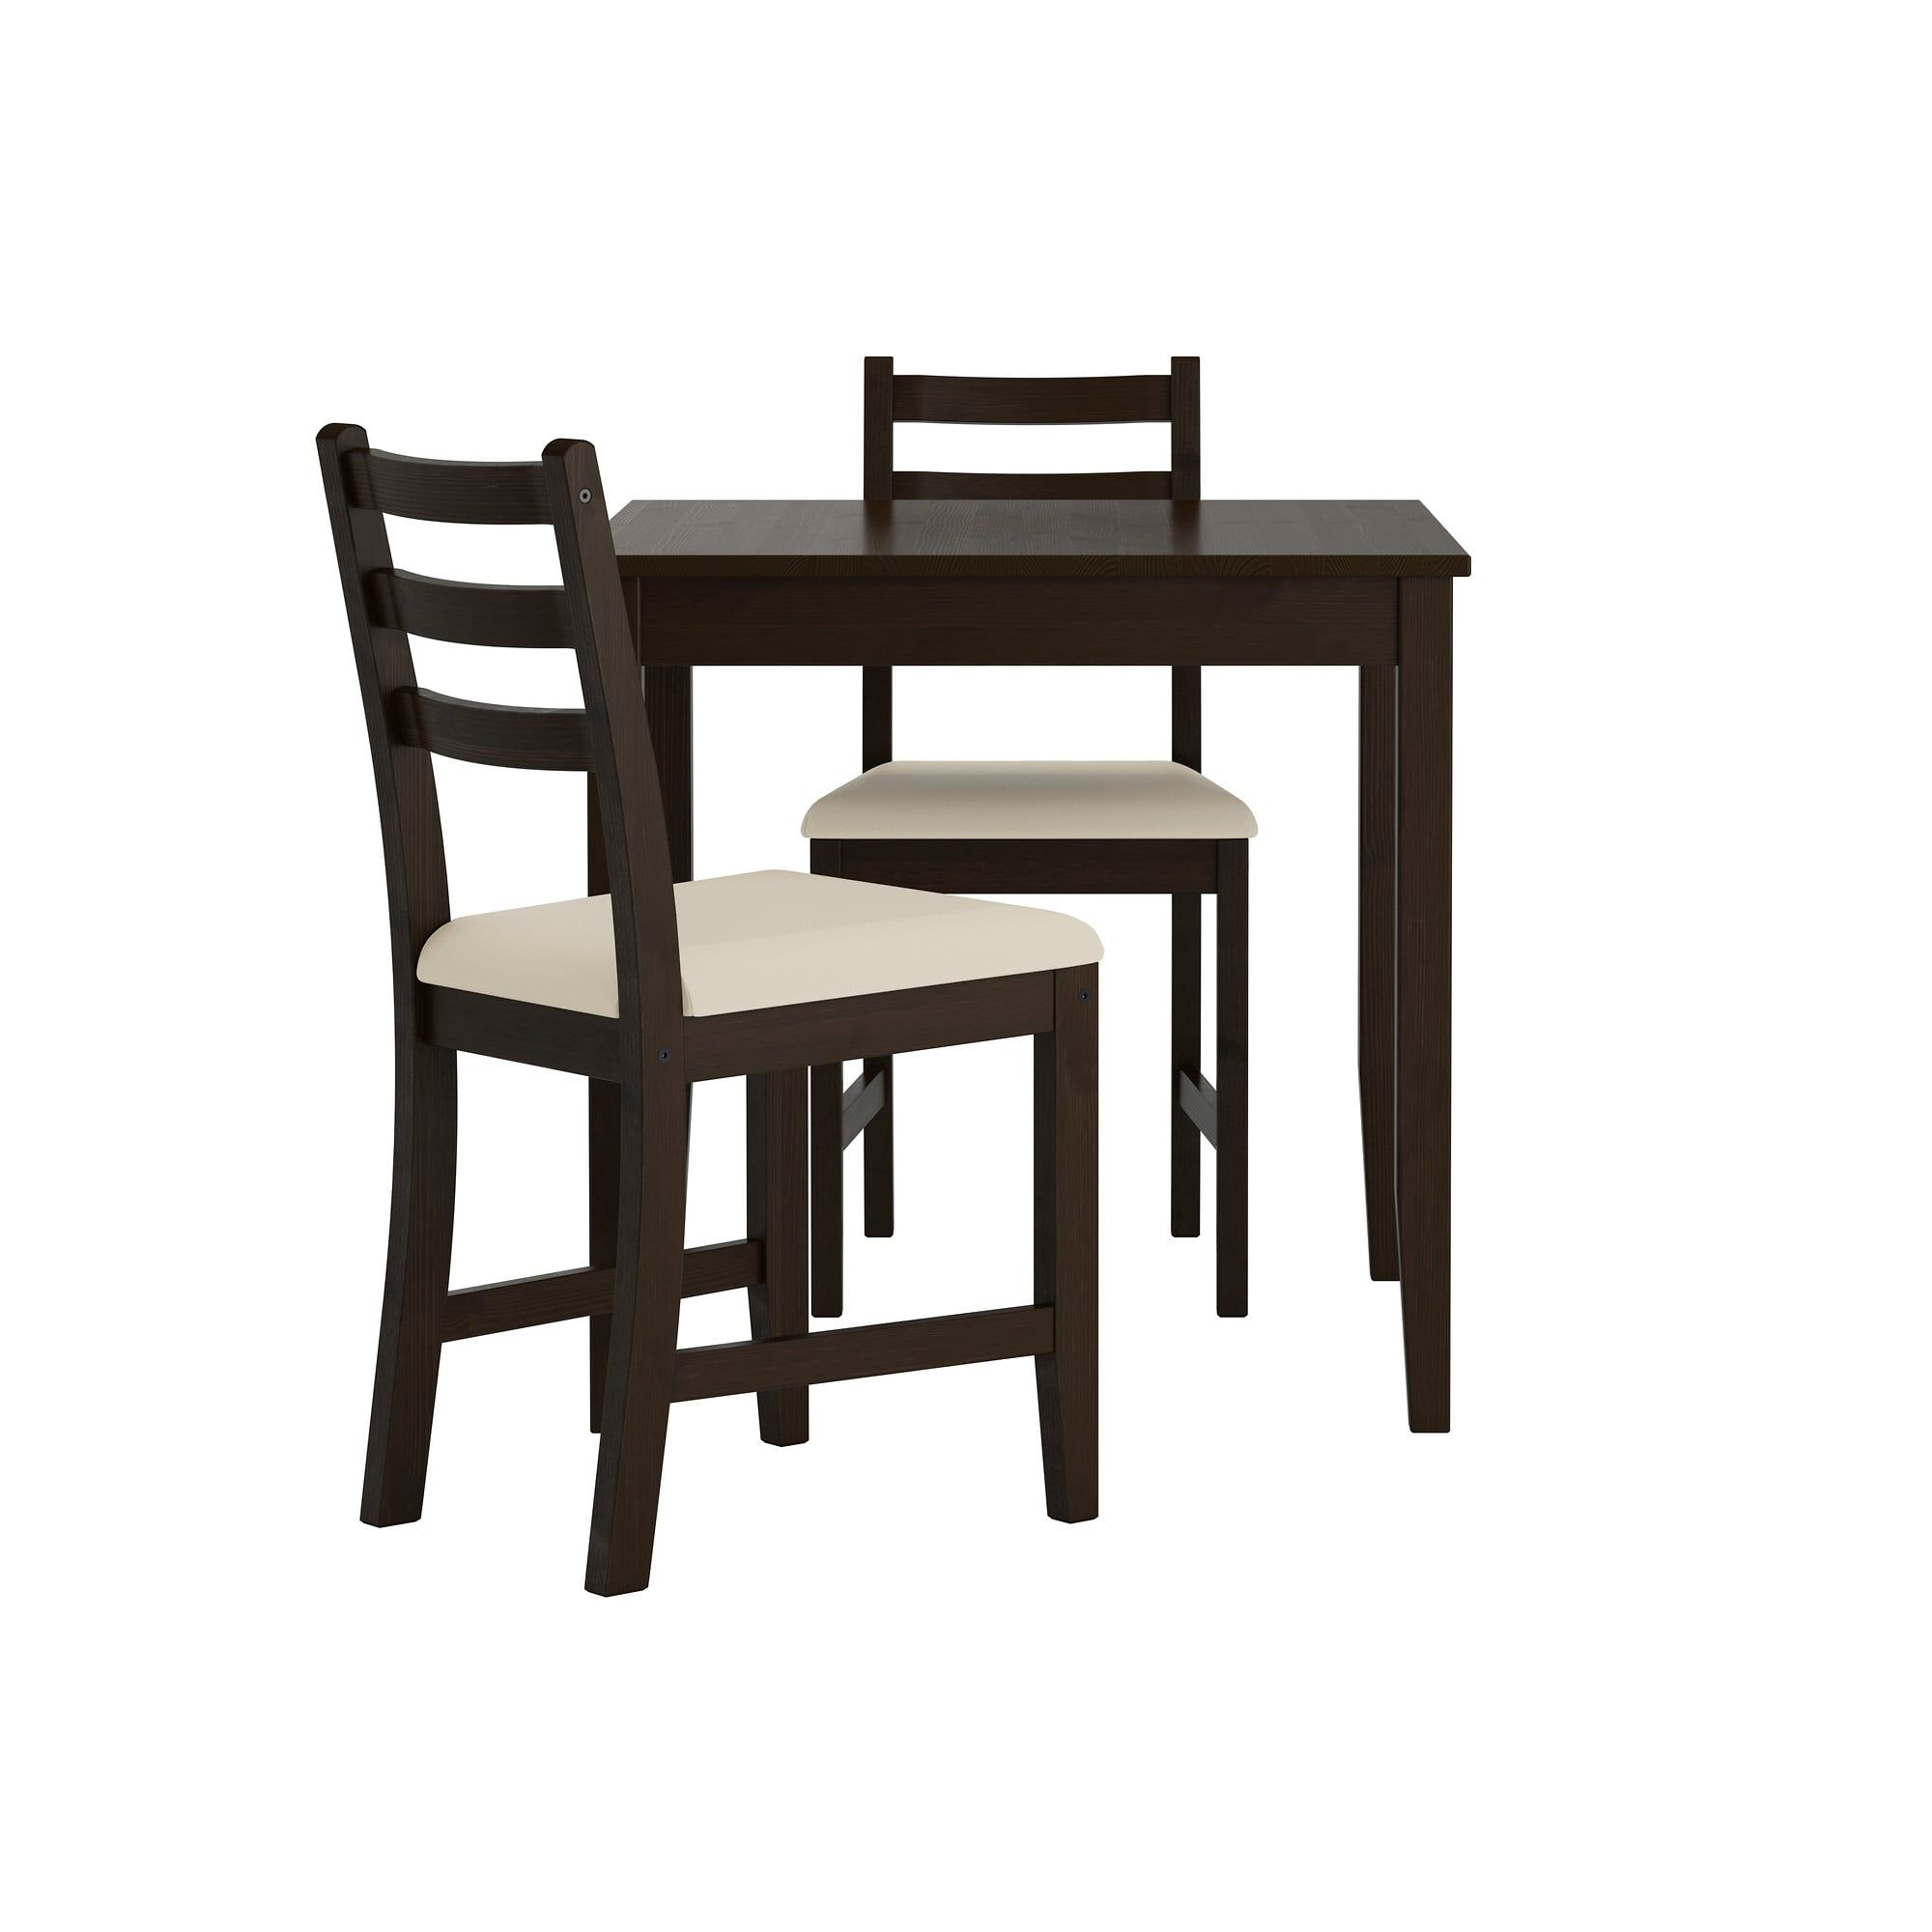 Ikea Us Furniture And Home Furnishings Ikea Dining Sets Ikea Dining Dining Room Sets